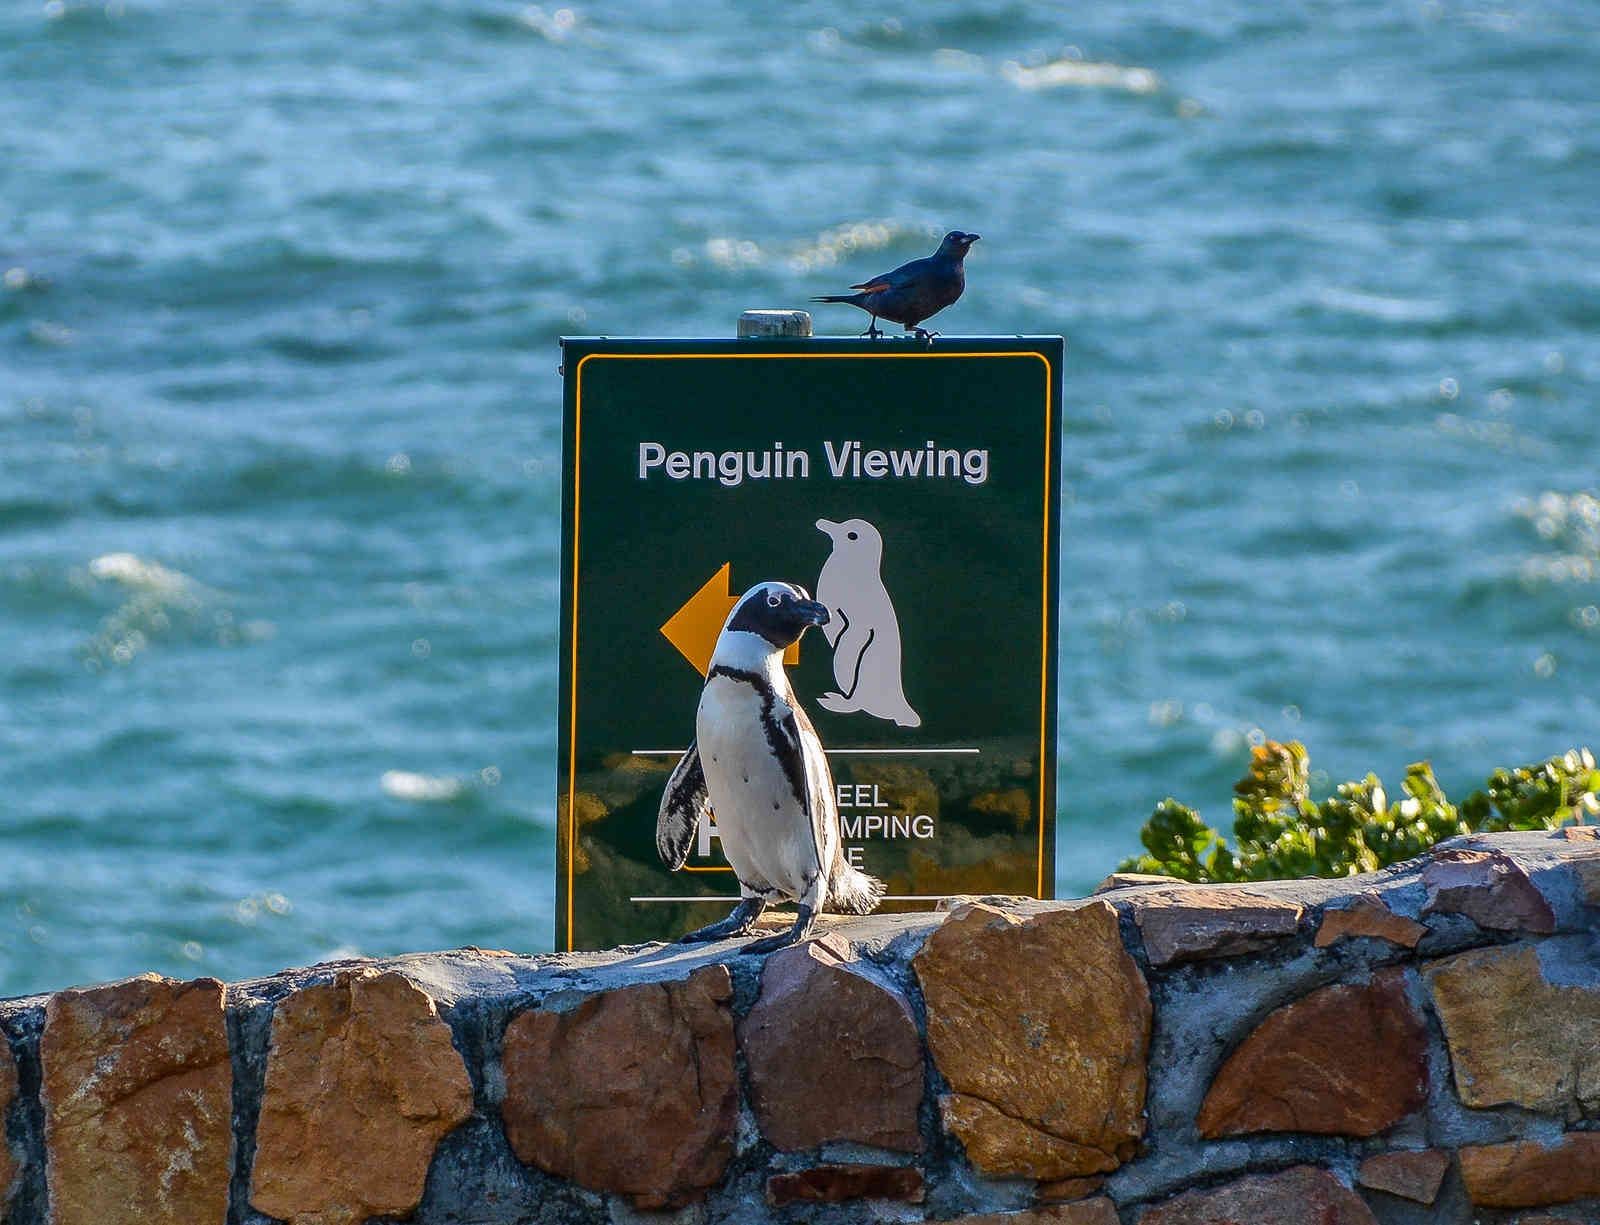 Boulders Penguin Colony Simon's Town